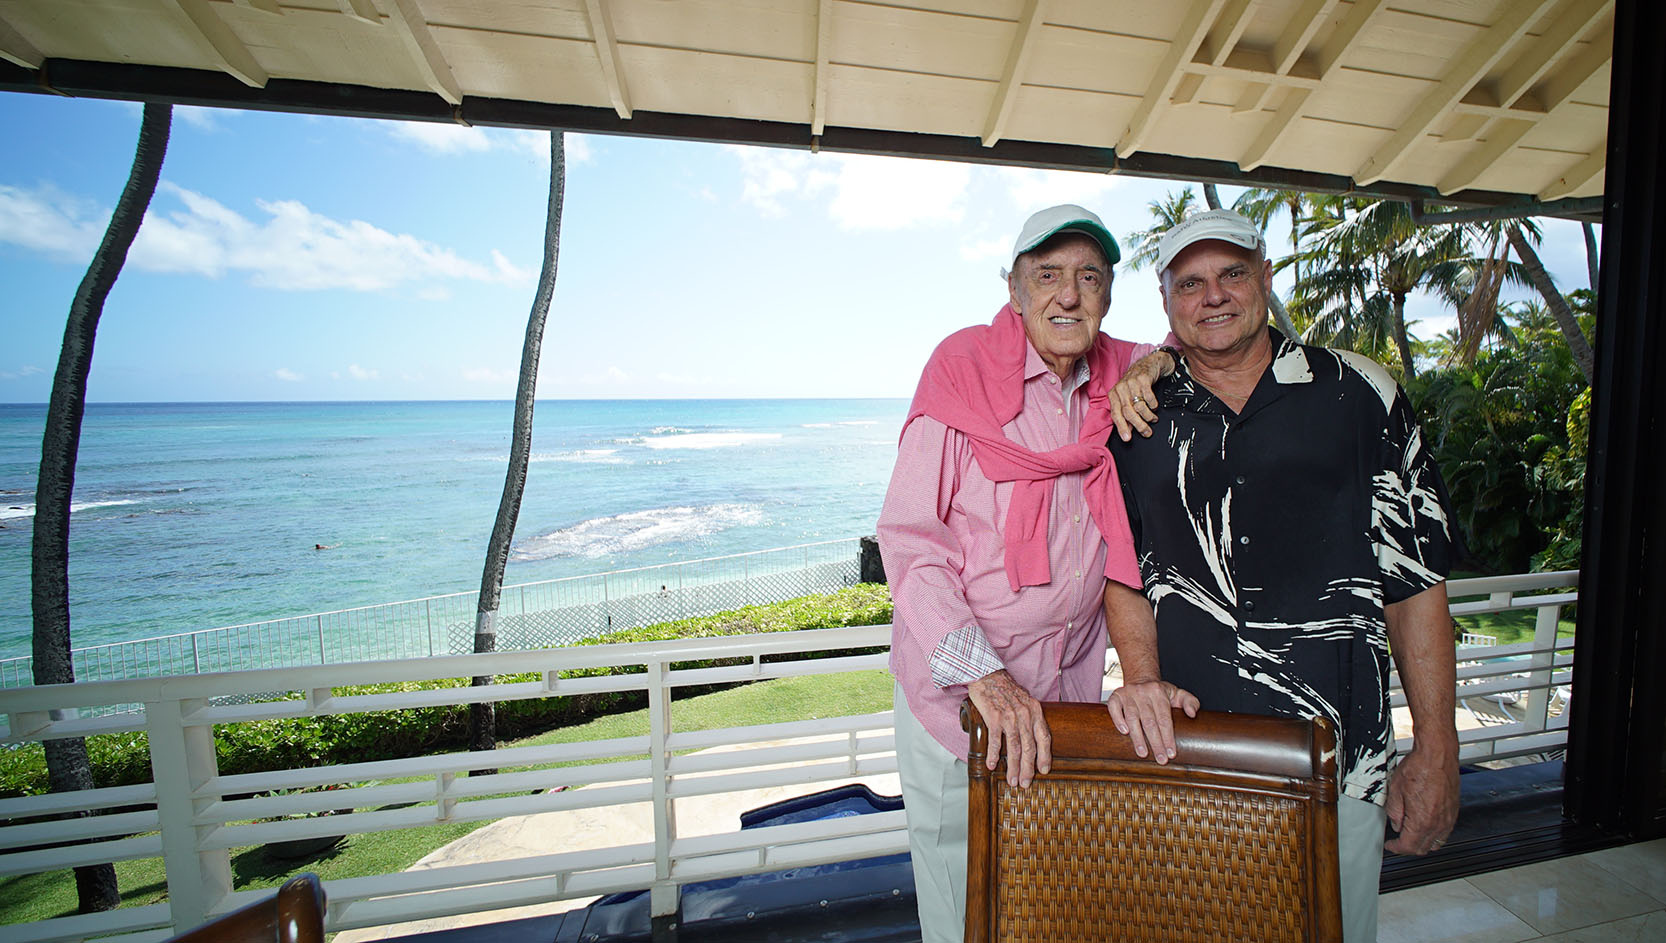 Peter Carlisle Jim Nabors Shares Life Lessons In Hawaii Honolulu Civil Beat Theirs was a relationship that had according to a 2013 report from hawaii news now, the relationship between jim nabors and stan cadwallader started in 1975, when cadwallader, who. peter carlisle jim nabors shares life